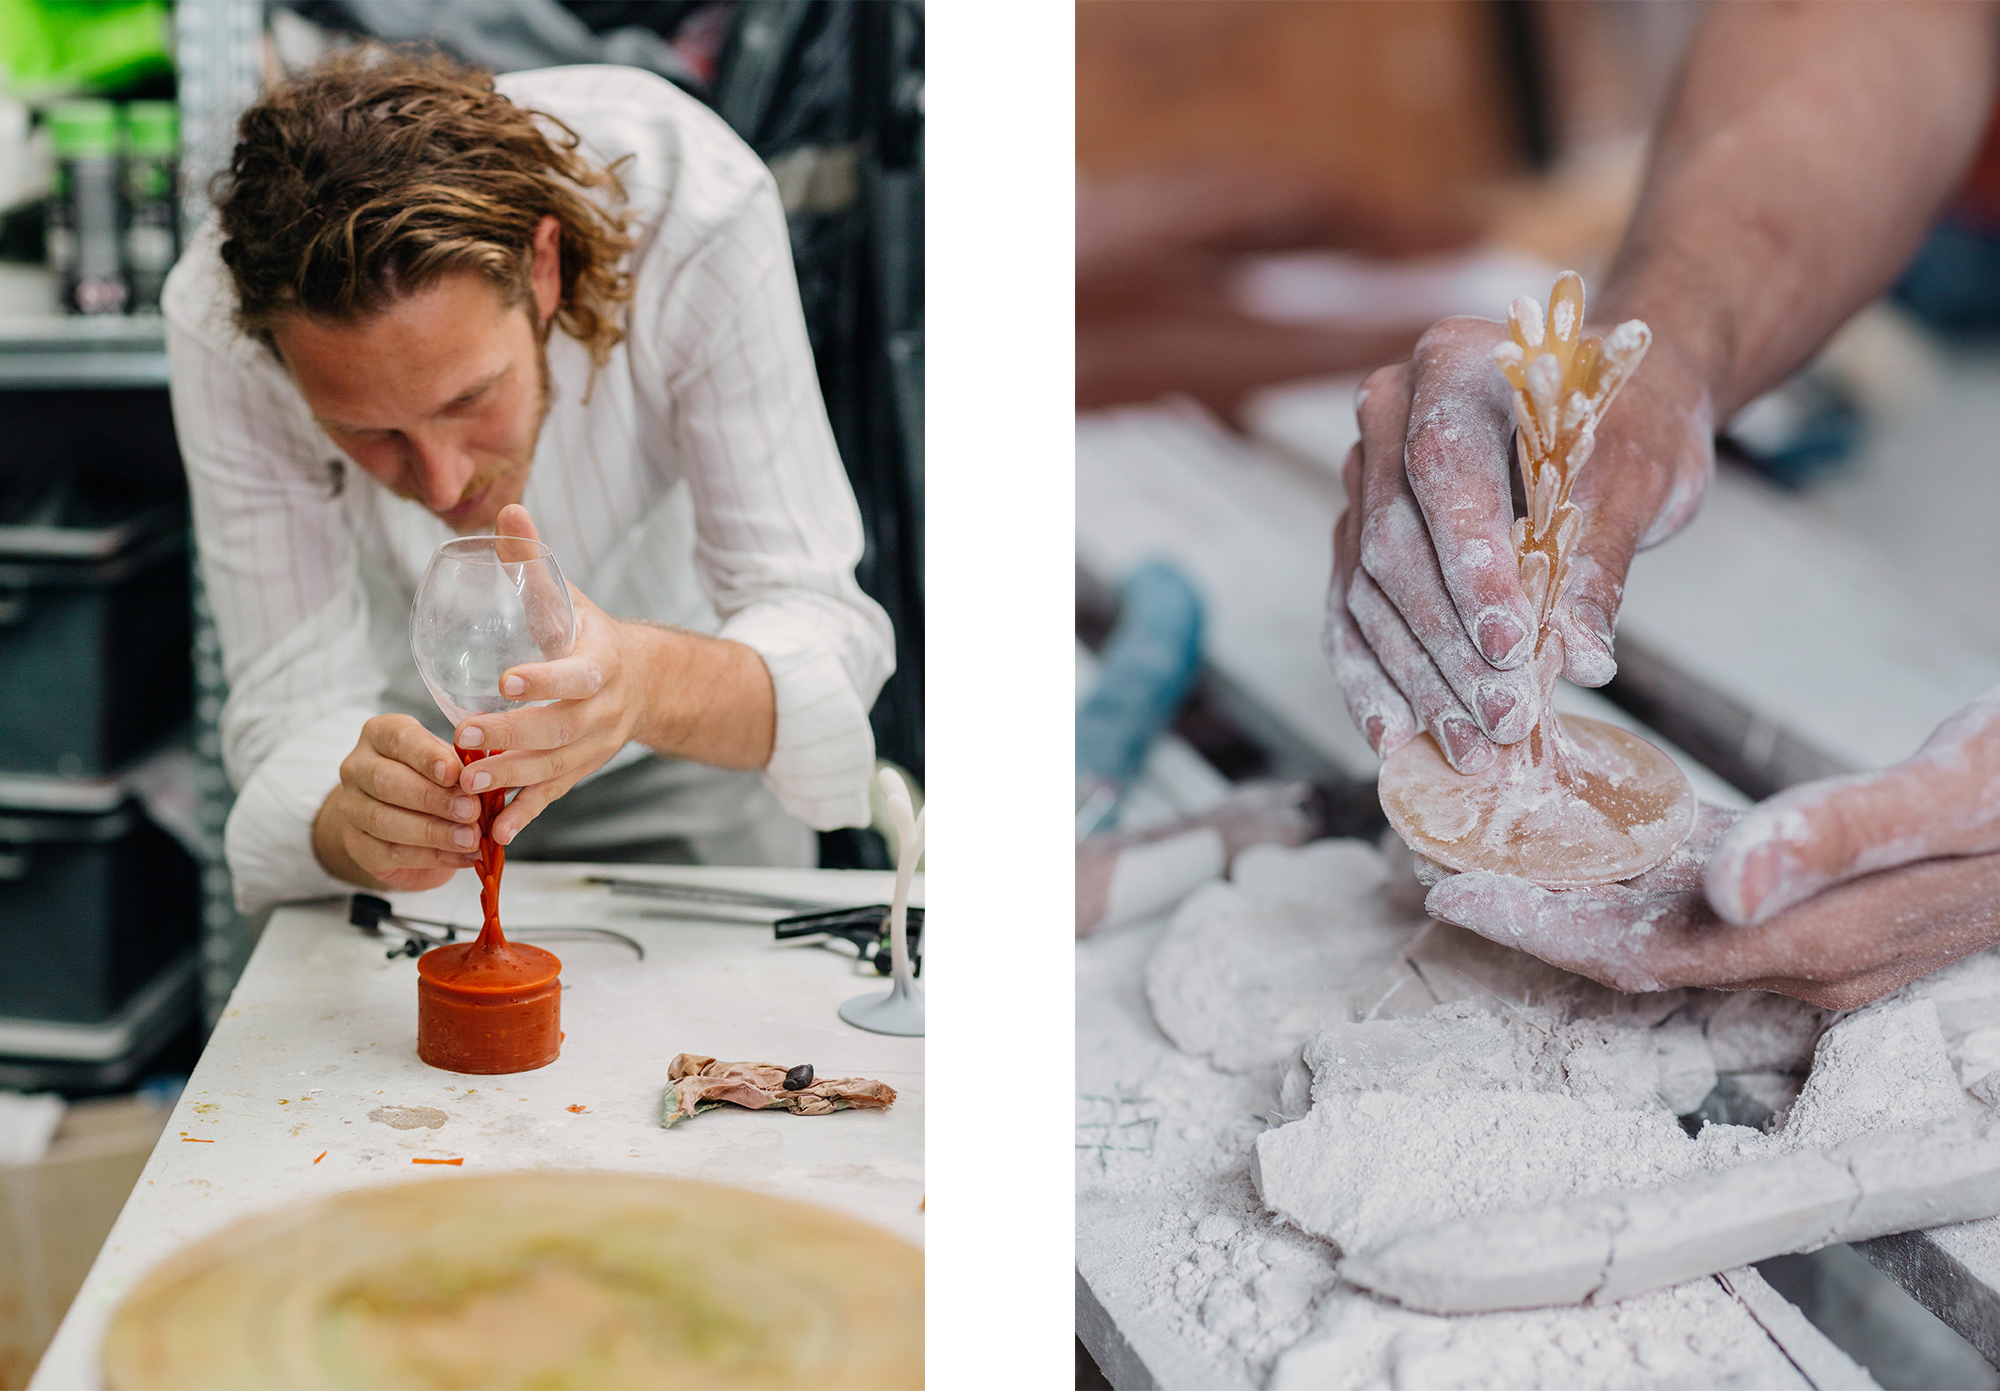 Metamorphosis, was designed as part of a creative collaboration between champagne maison Perrier-Jouët and Andrea Mancuso